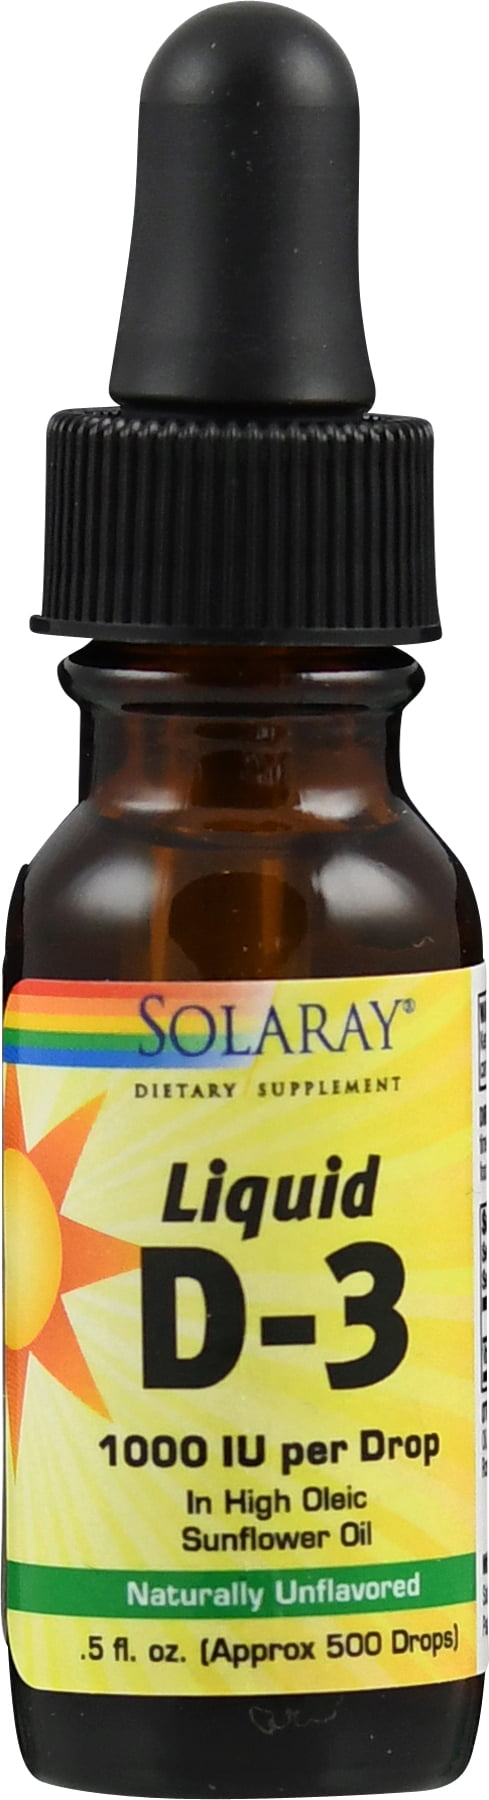 Solaray Vitamin D3 Liquid, Organic Oil - 14 ml von Solaray